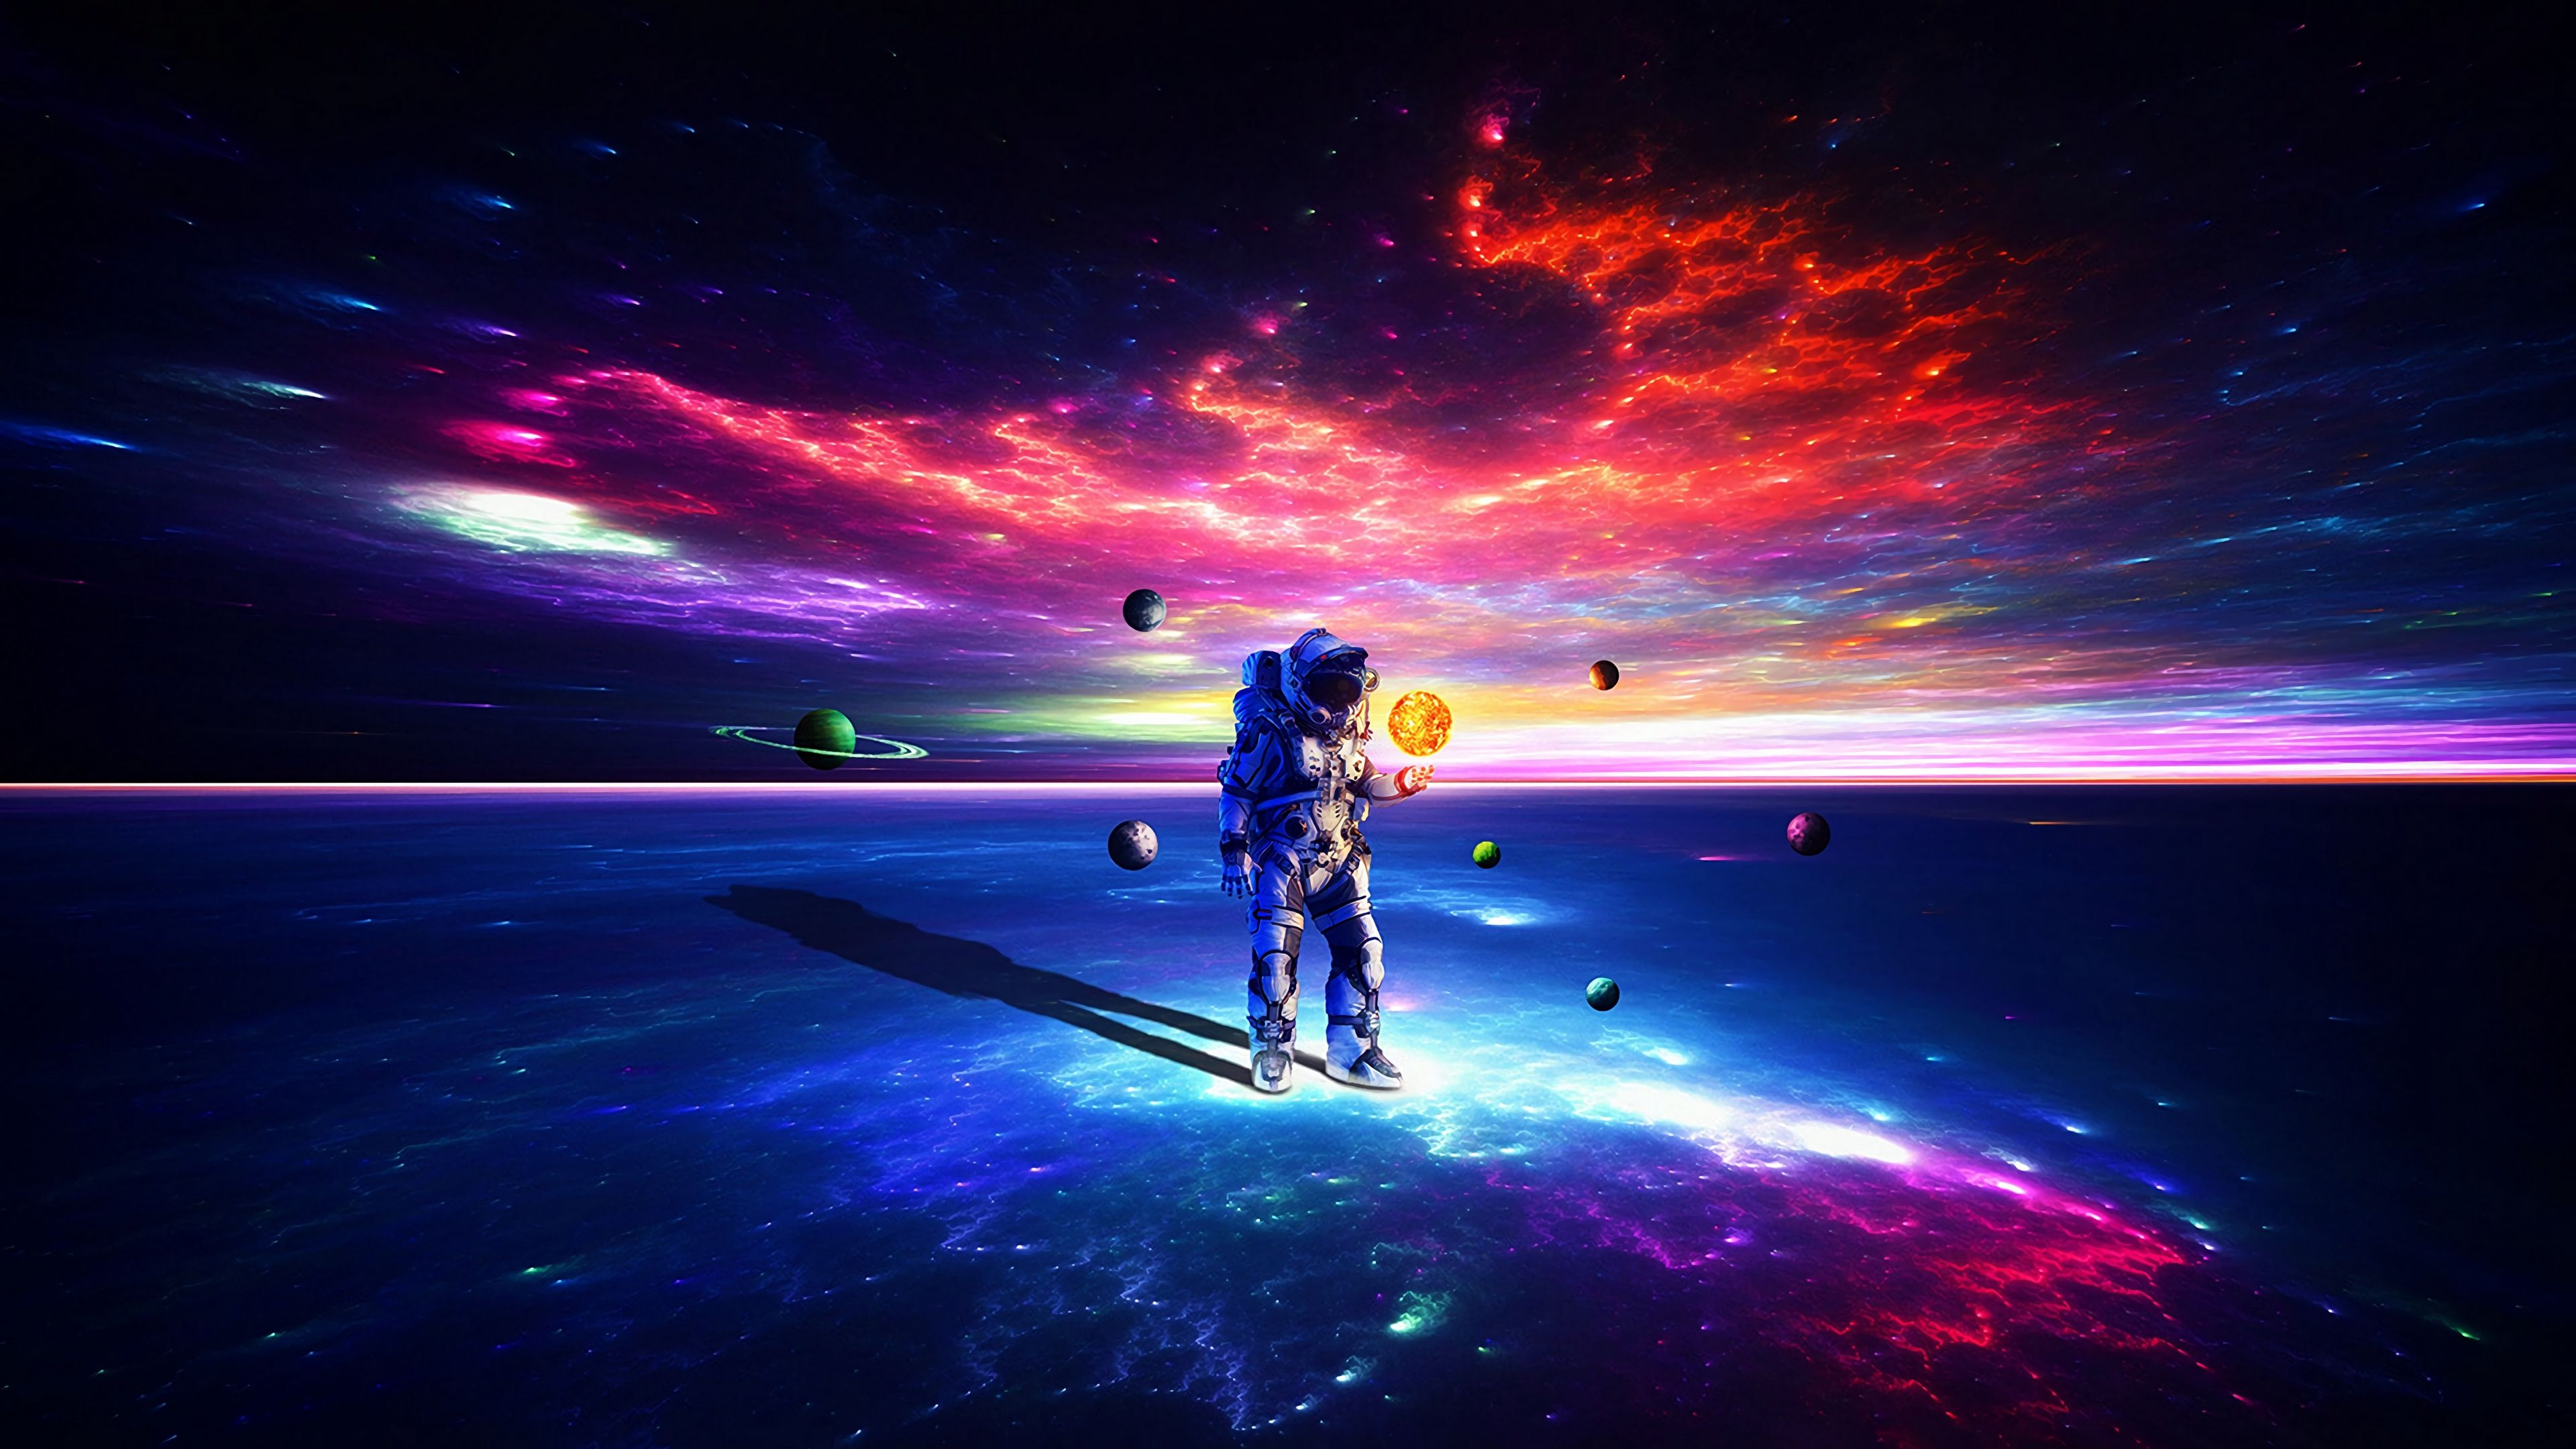 Astronaut 3840x2160 Wallpapers - Top